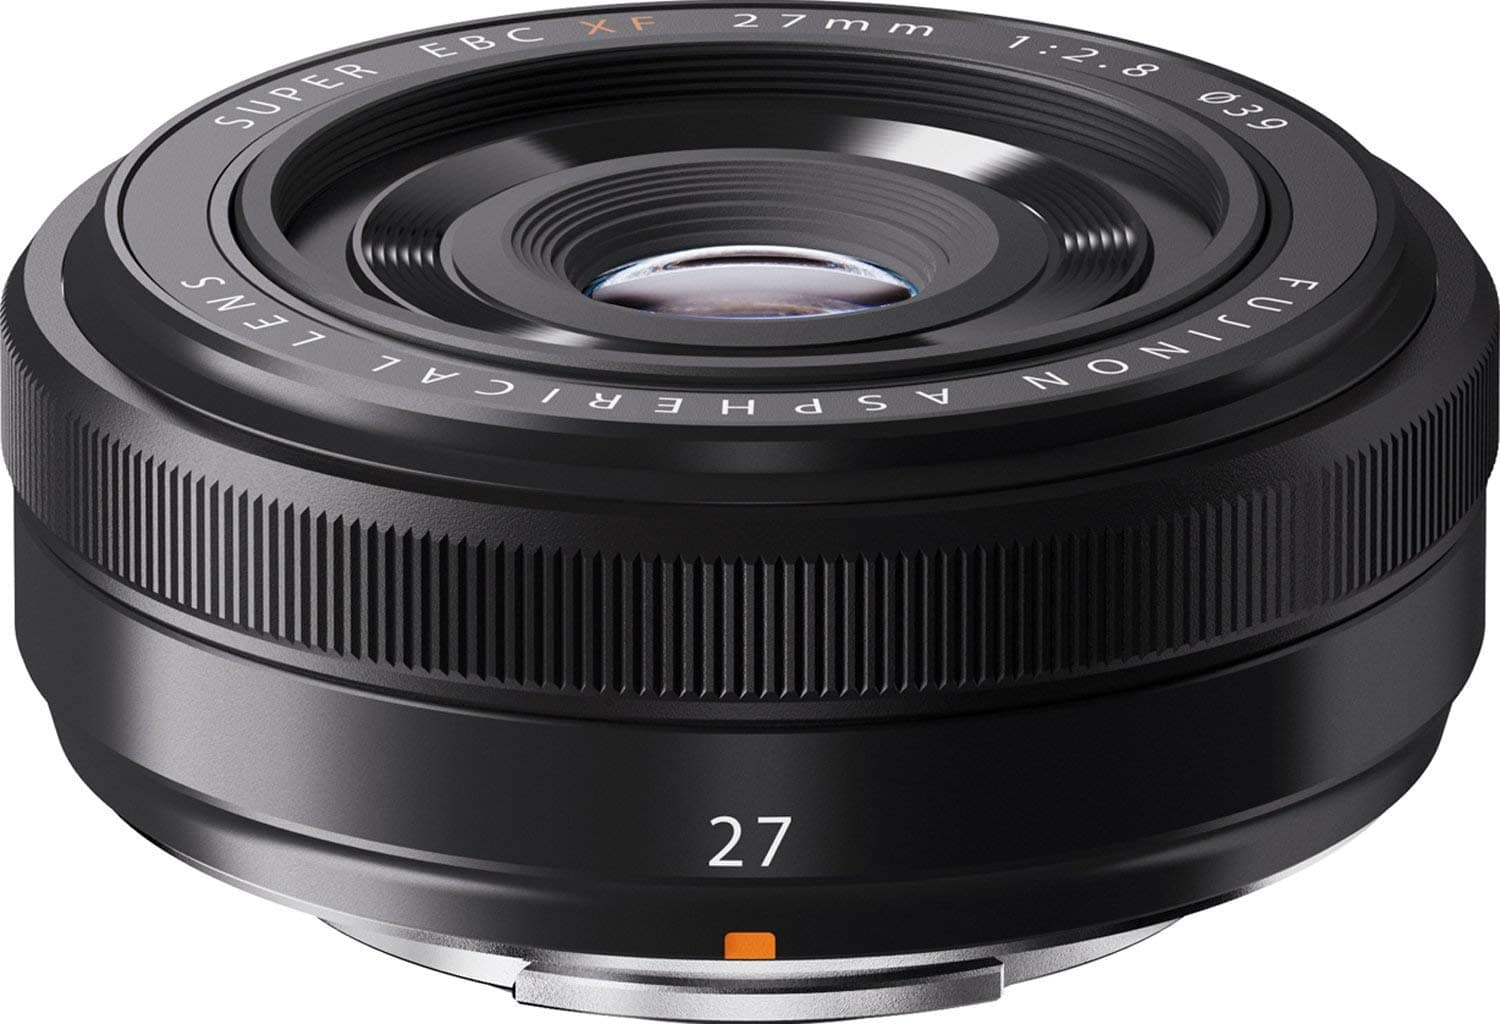 fuji 27mm lens review